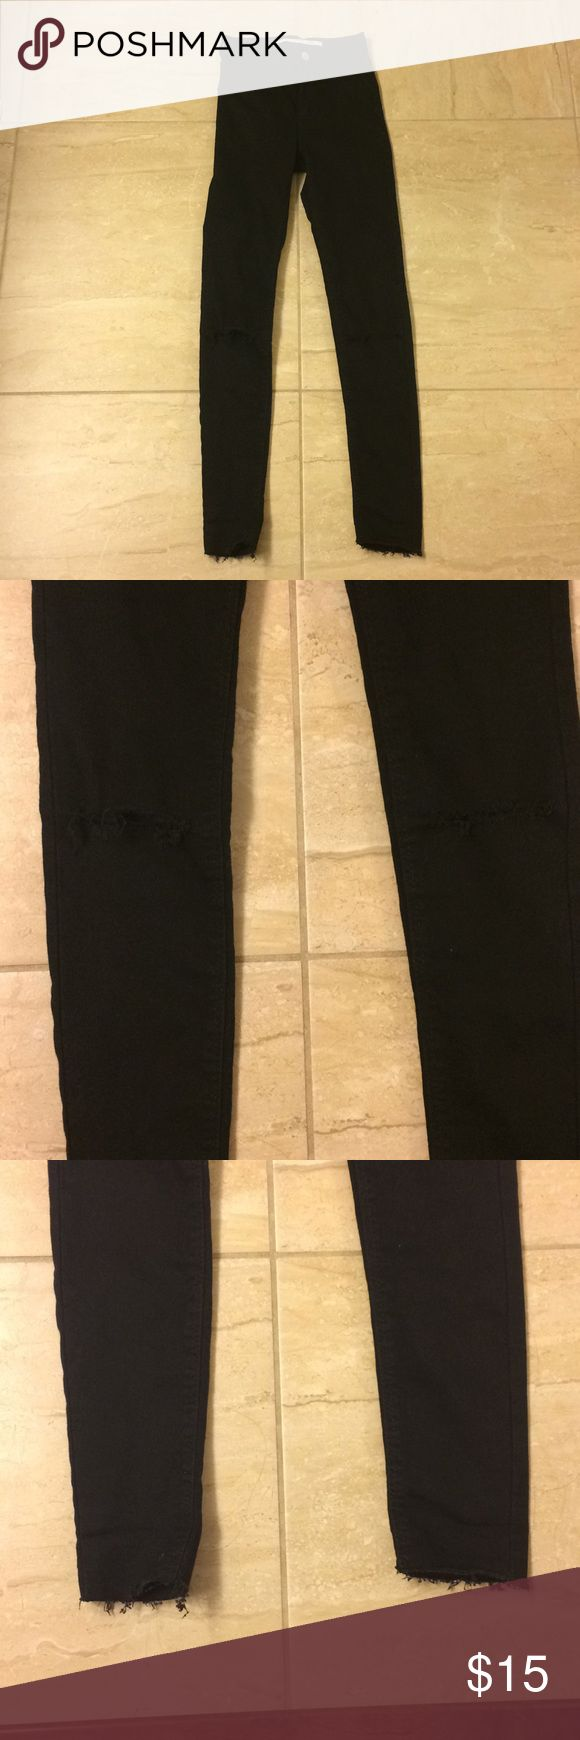 NEW Zara black high waisted jeans w/ ripped knees BRAND NEW Zara black jeans. High waisted skinny fit with zipper and button. The knees are ripped / frayed for the ripped knee effect. The ankle bottoms are frayed too. Size 2 Zara Jeans Skinny